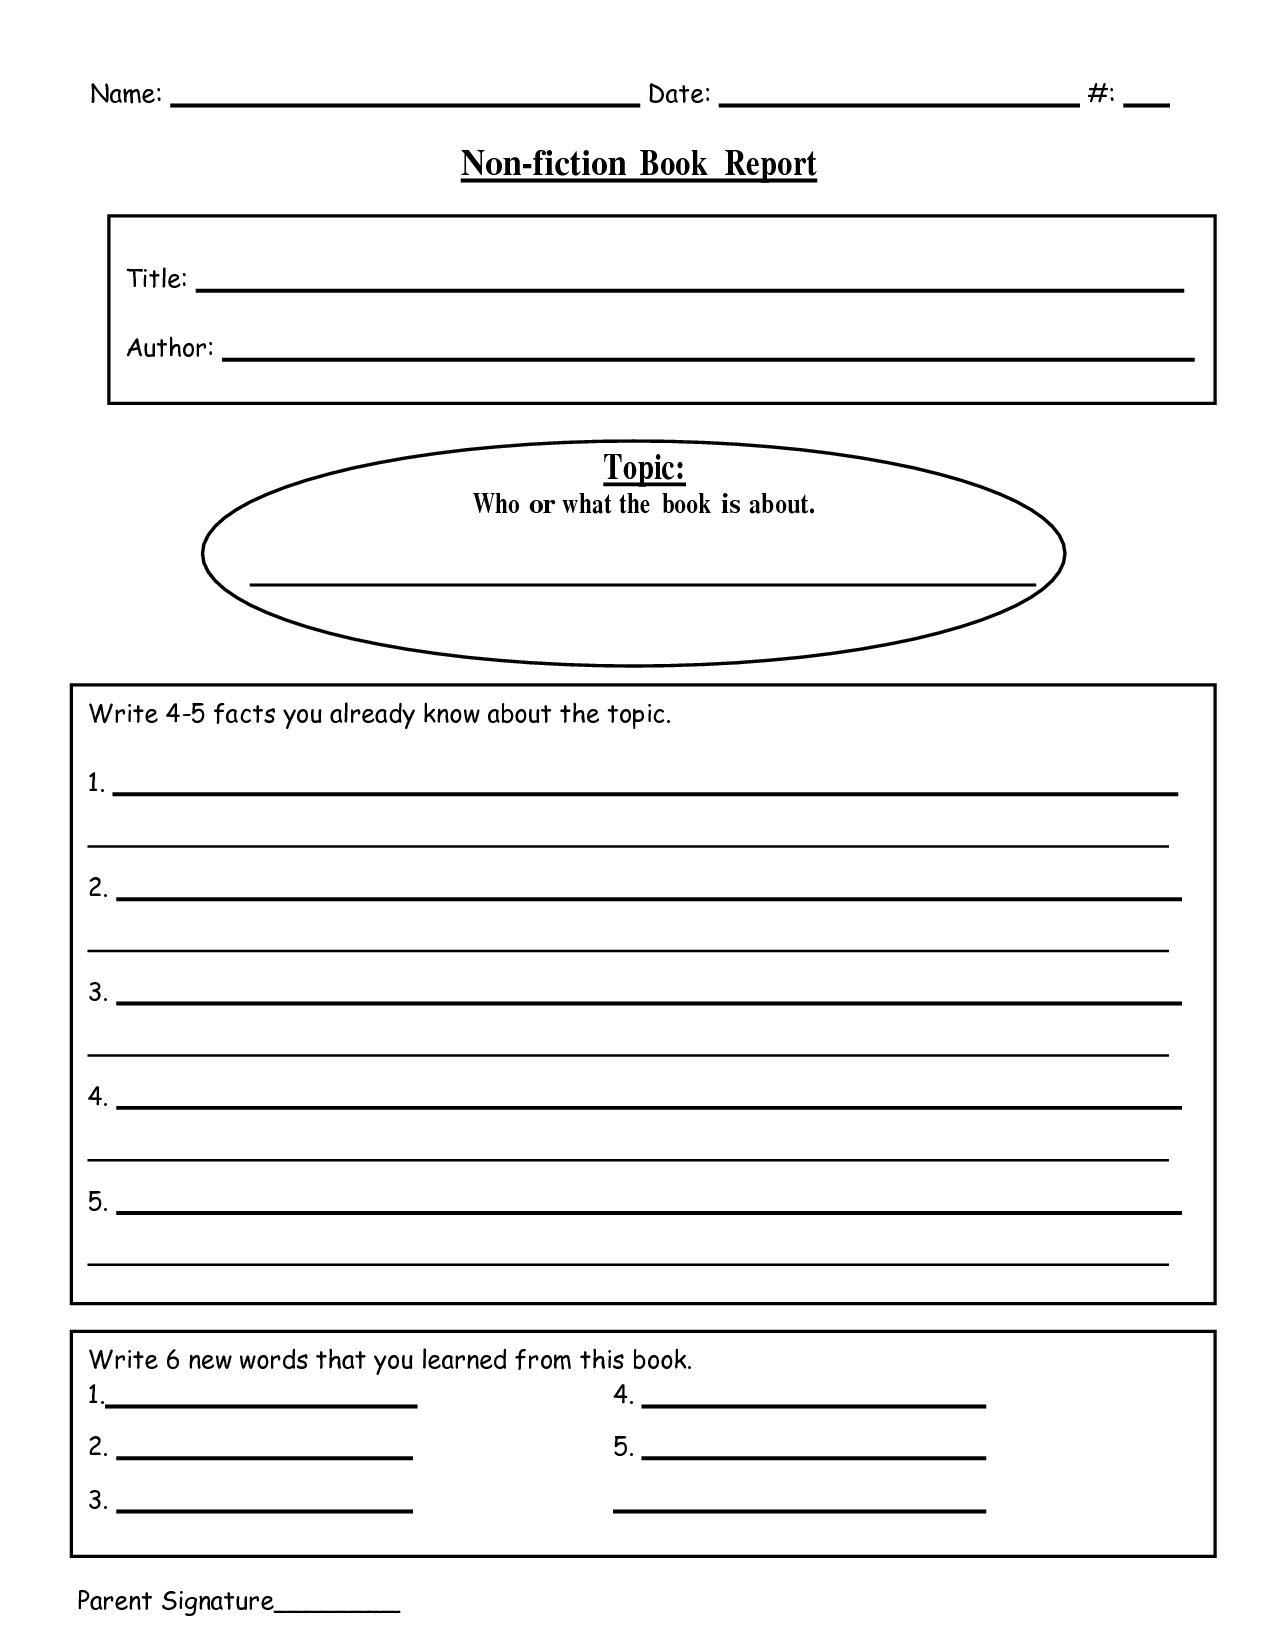 28 Images Of 5Th Grade Non Fiction Book Report Template | Somaek - Free Printable Books For 5Th Graders